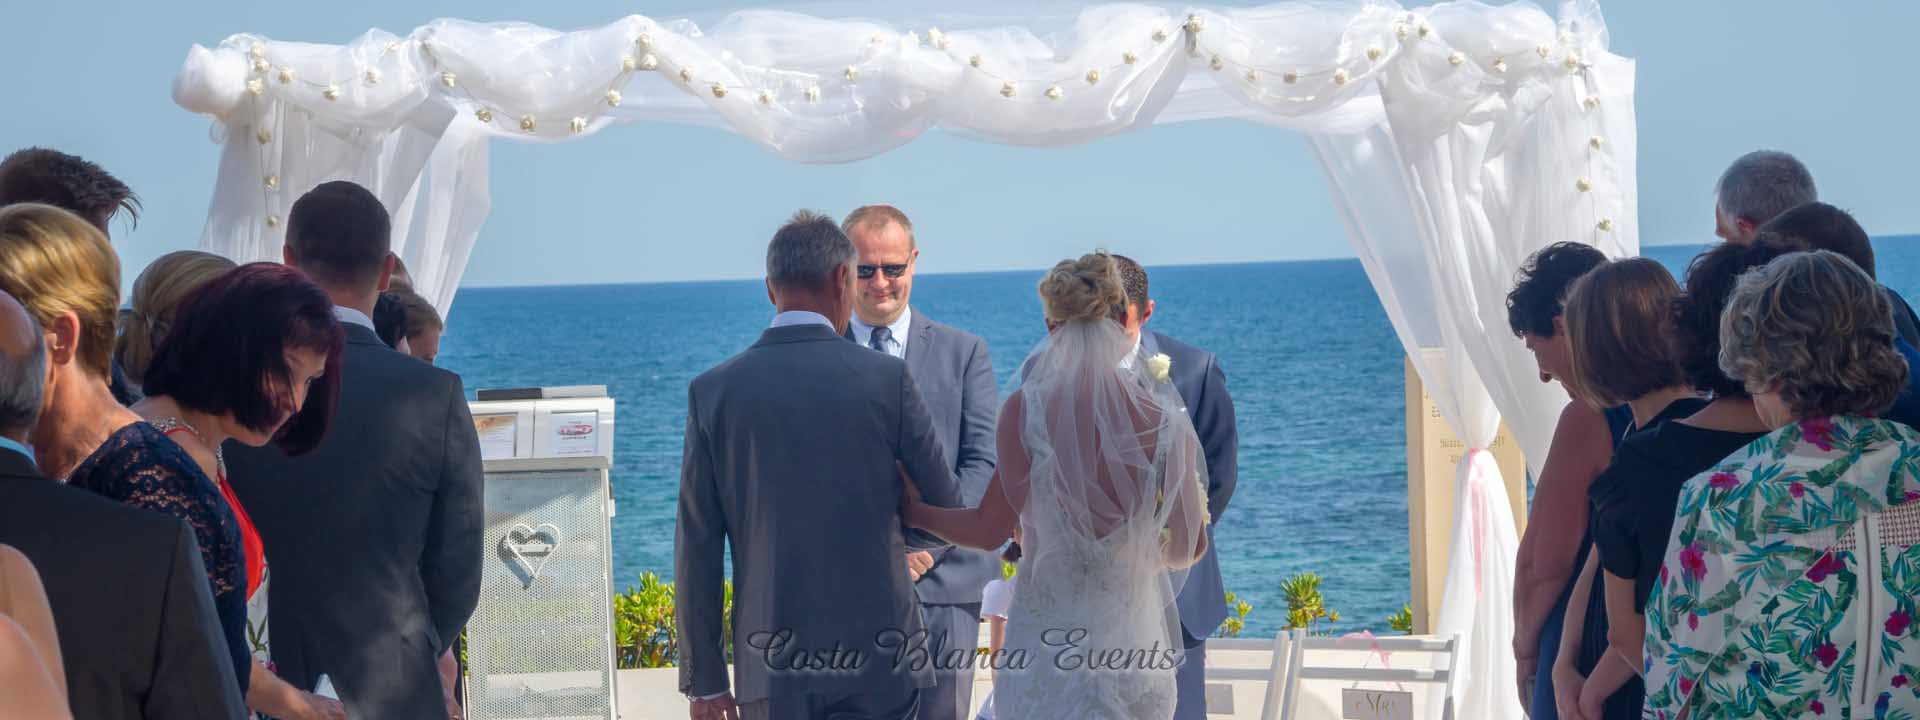 Types of weddings in Spain - wedding blessing ceremony Spain